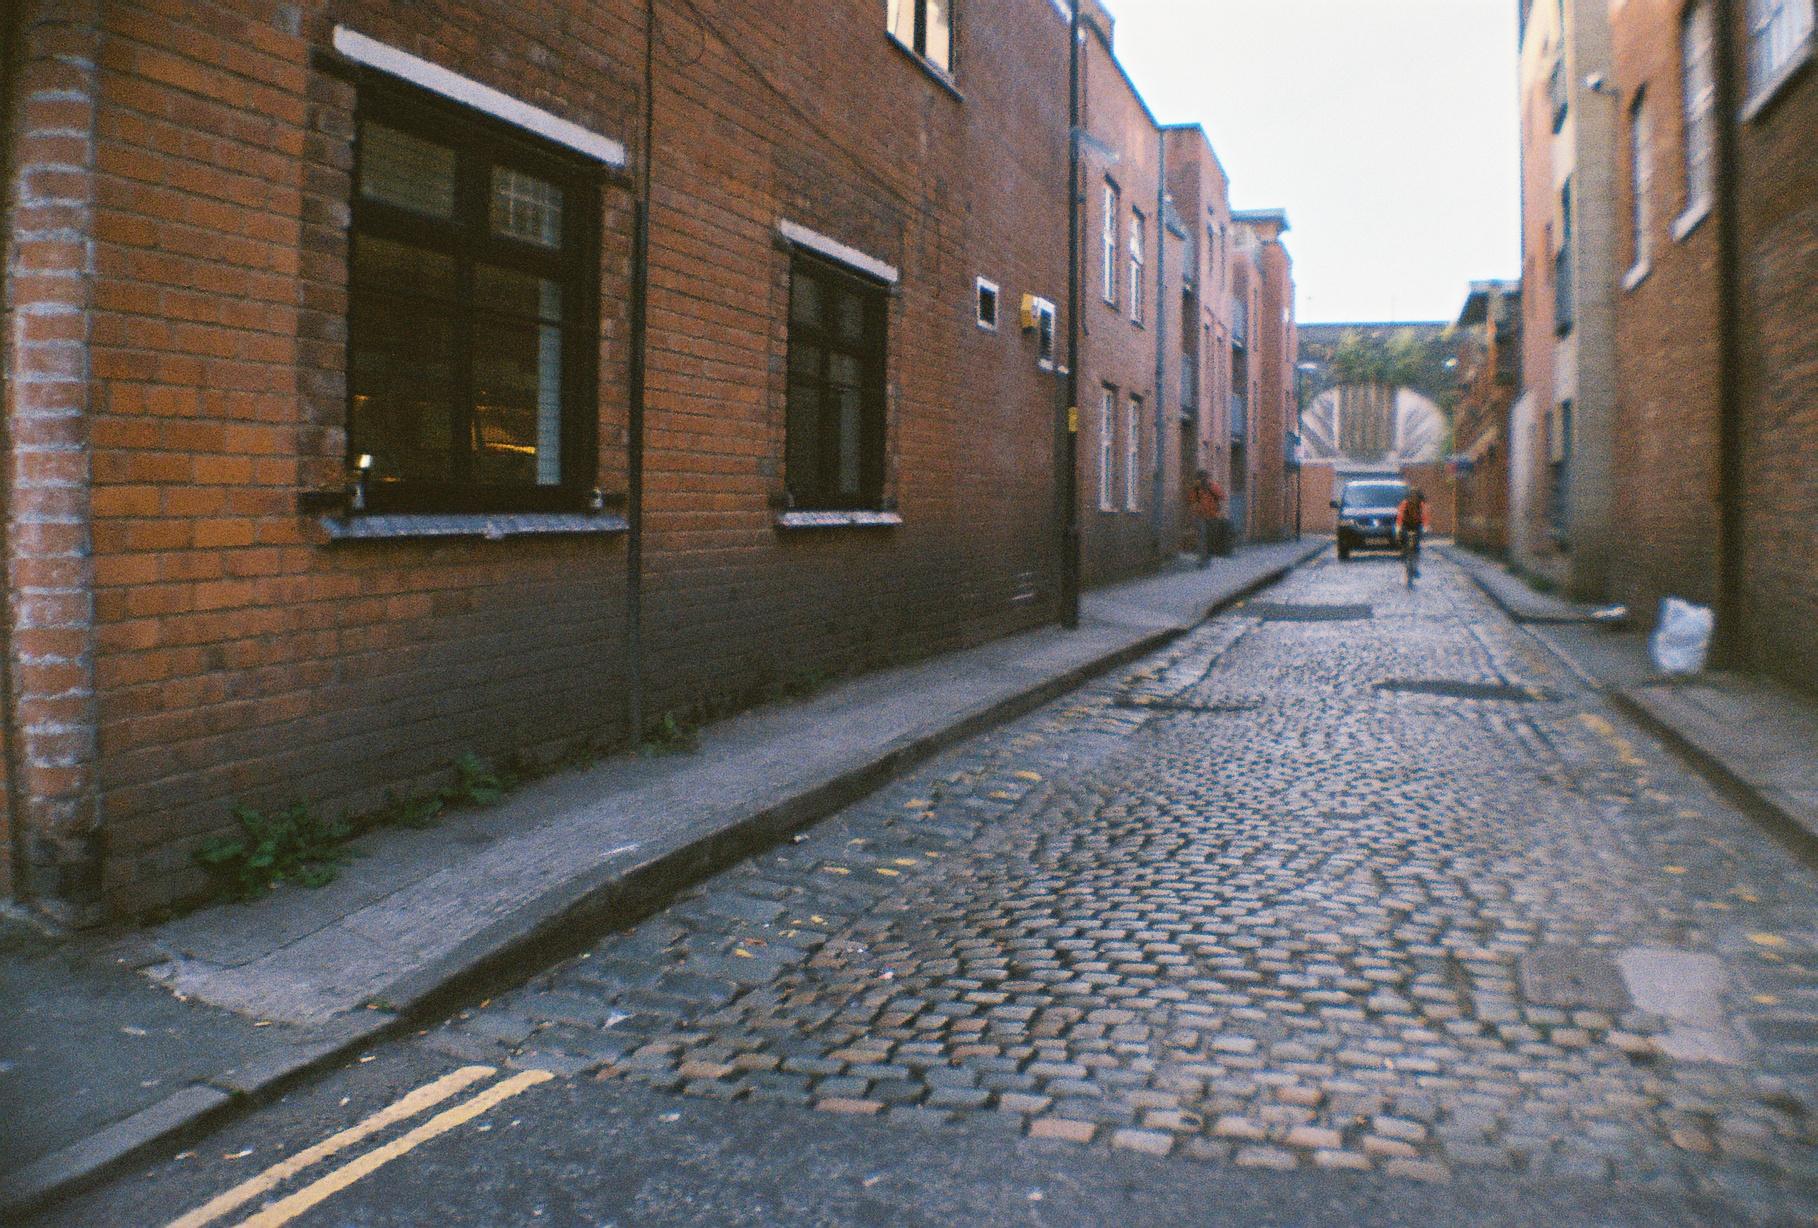 Narrow cobblestone streets in England